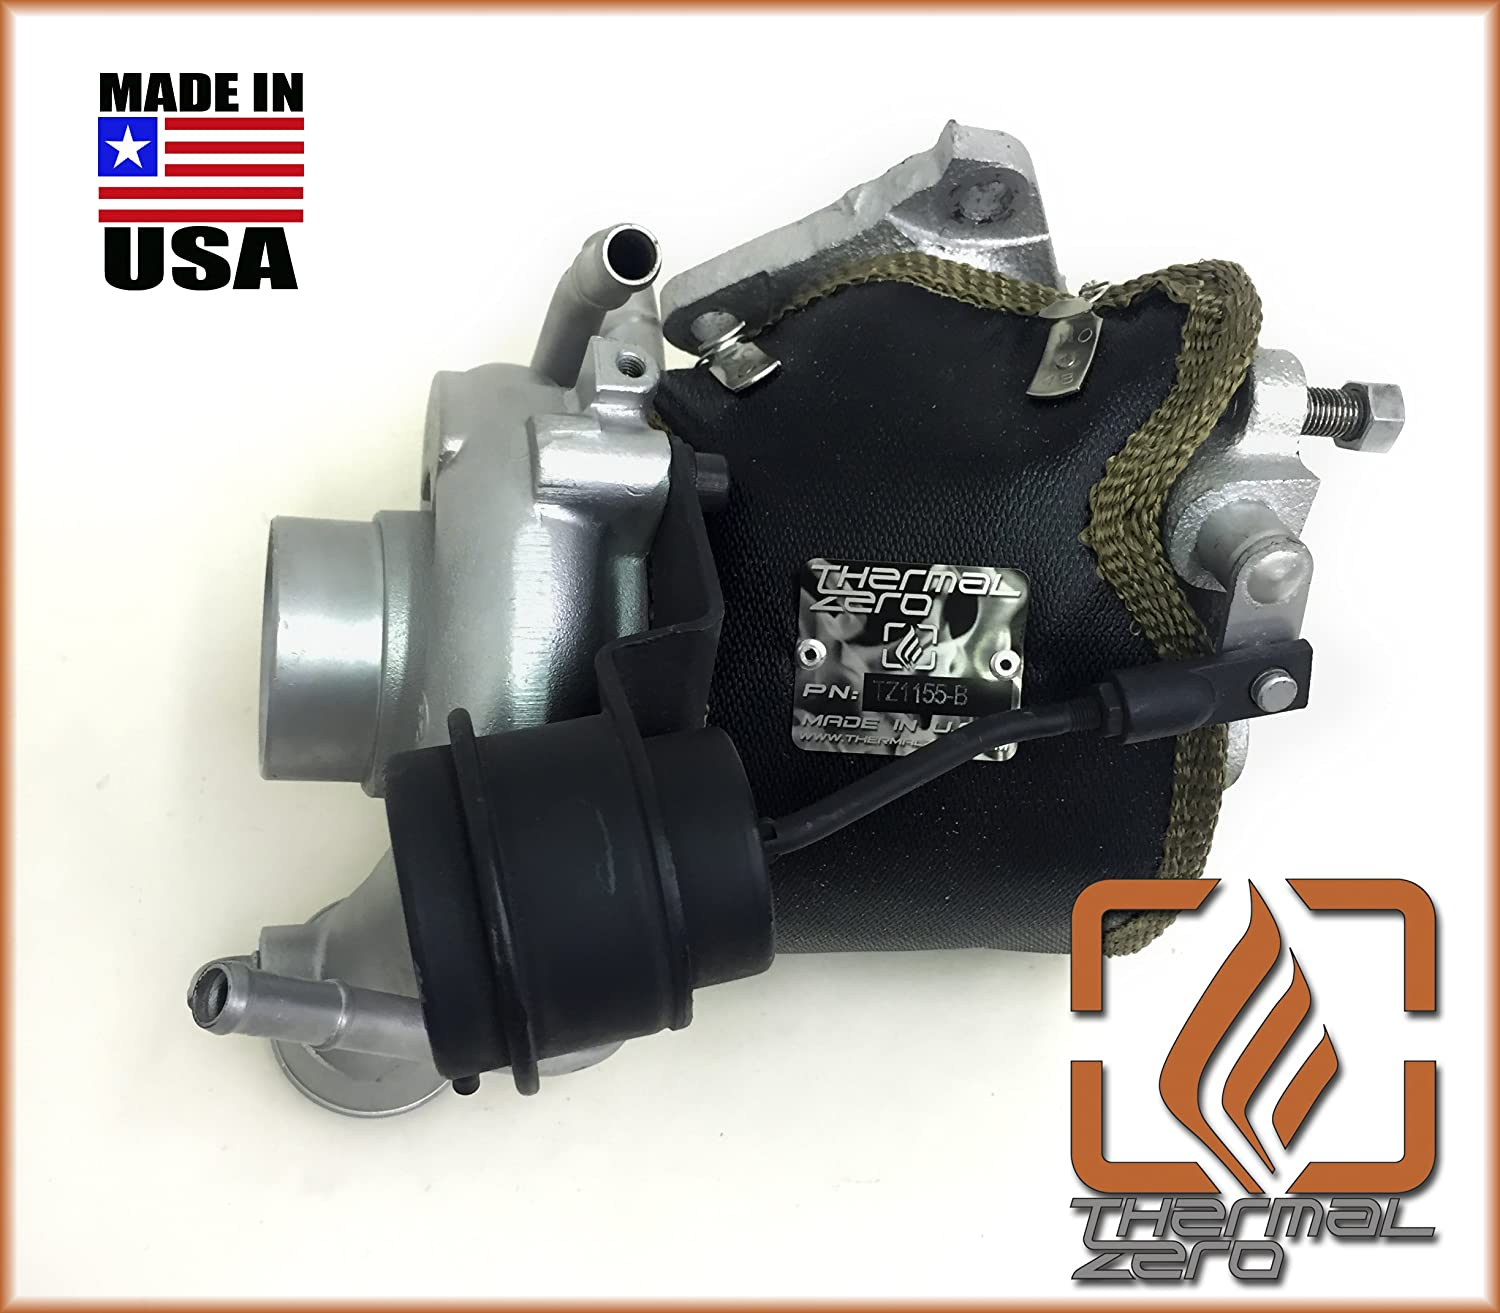 Black TZ1155-B MADE IN USA Thermal Zero 2500/°F Wrap around Turbo Blanket Compatible with most OEM Subaru VF series turbochargers replacement for turbo heat shield